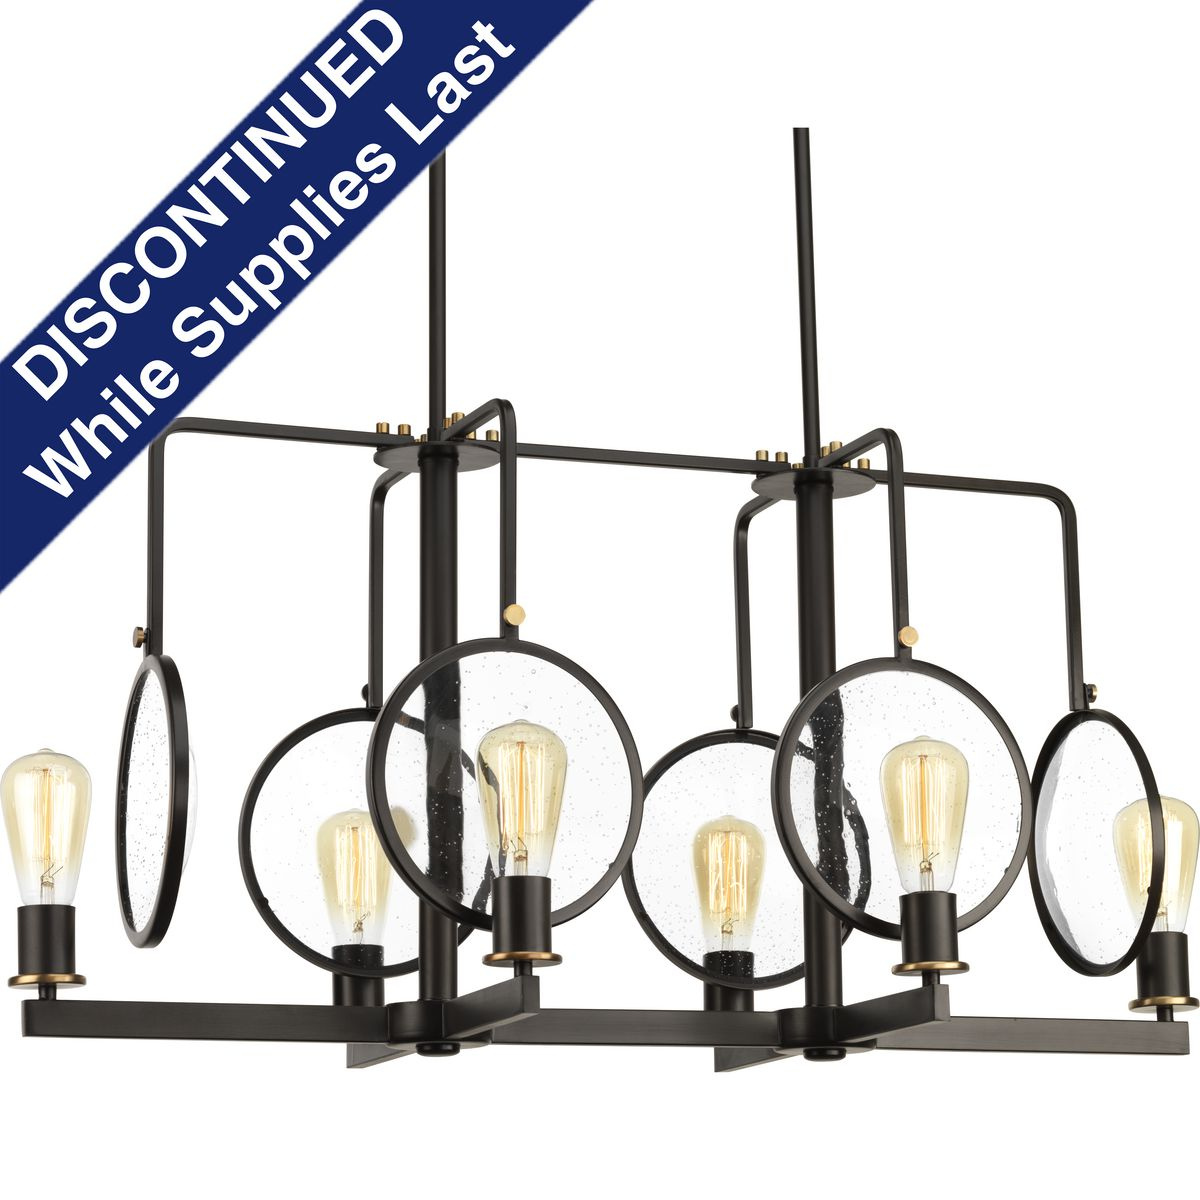 Looking Gl Collection Six Light Linear Chandelier